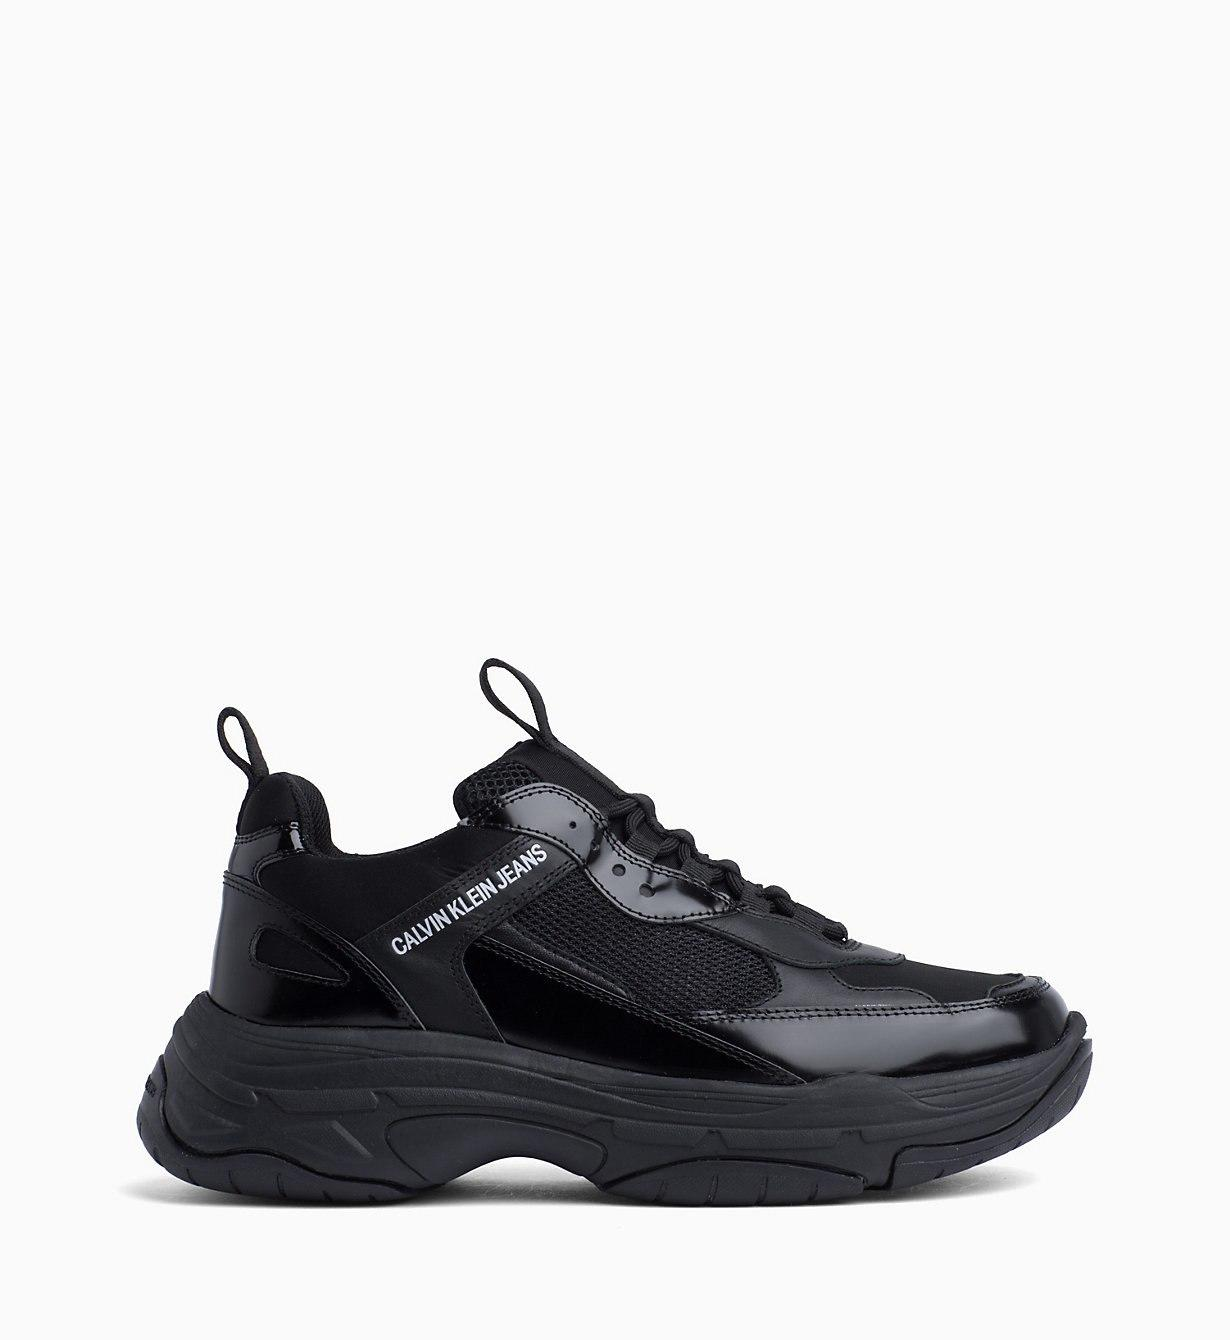 c6a4852454fe96 ... Black Leather Trainers. Visit Calvin Klein. Tap to visit site